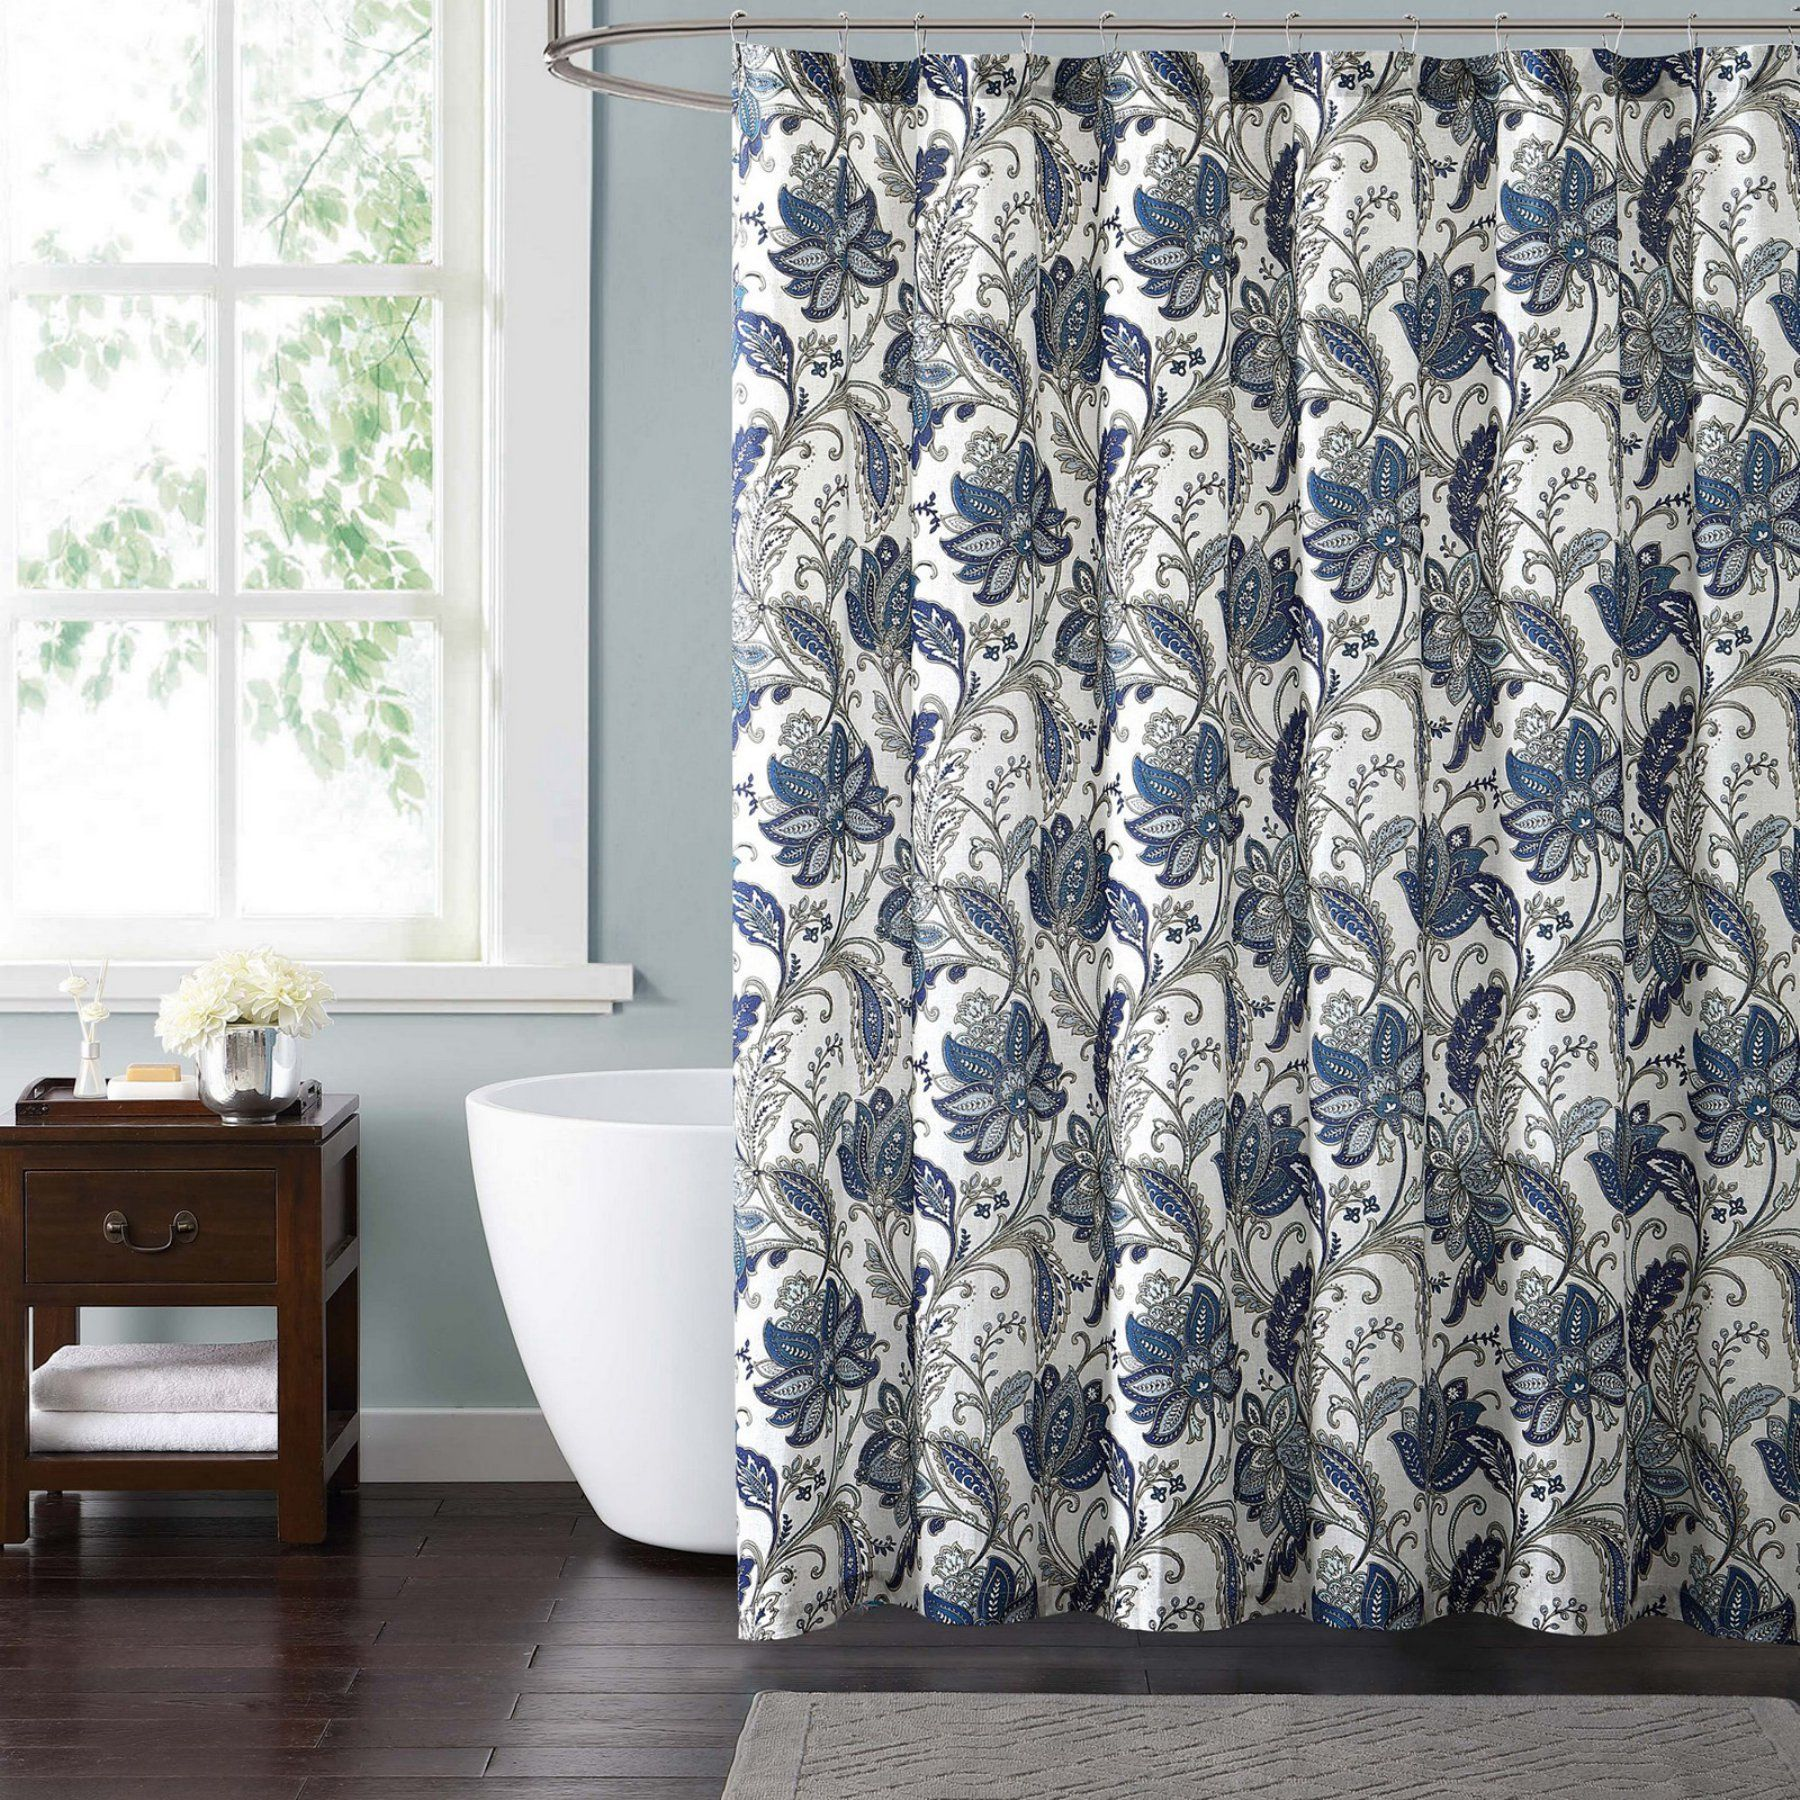 Style 212 Bettina Floral Shower Curtain Sc1844 6200 Floral